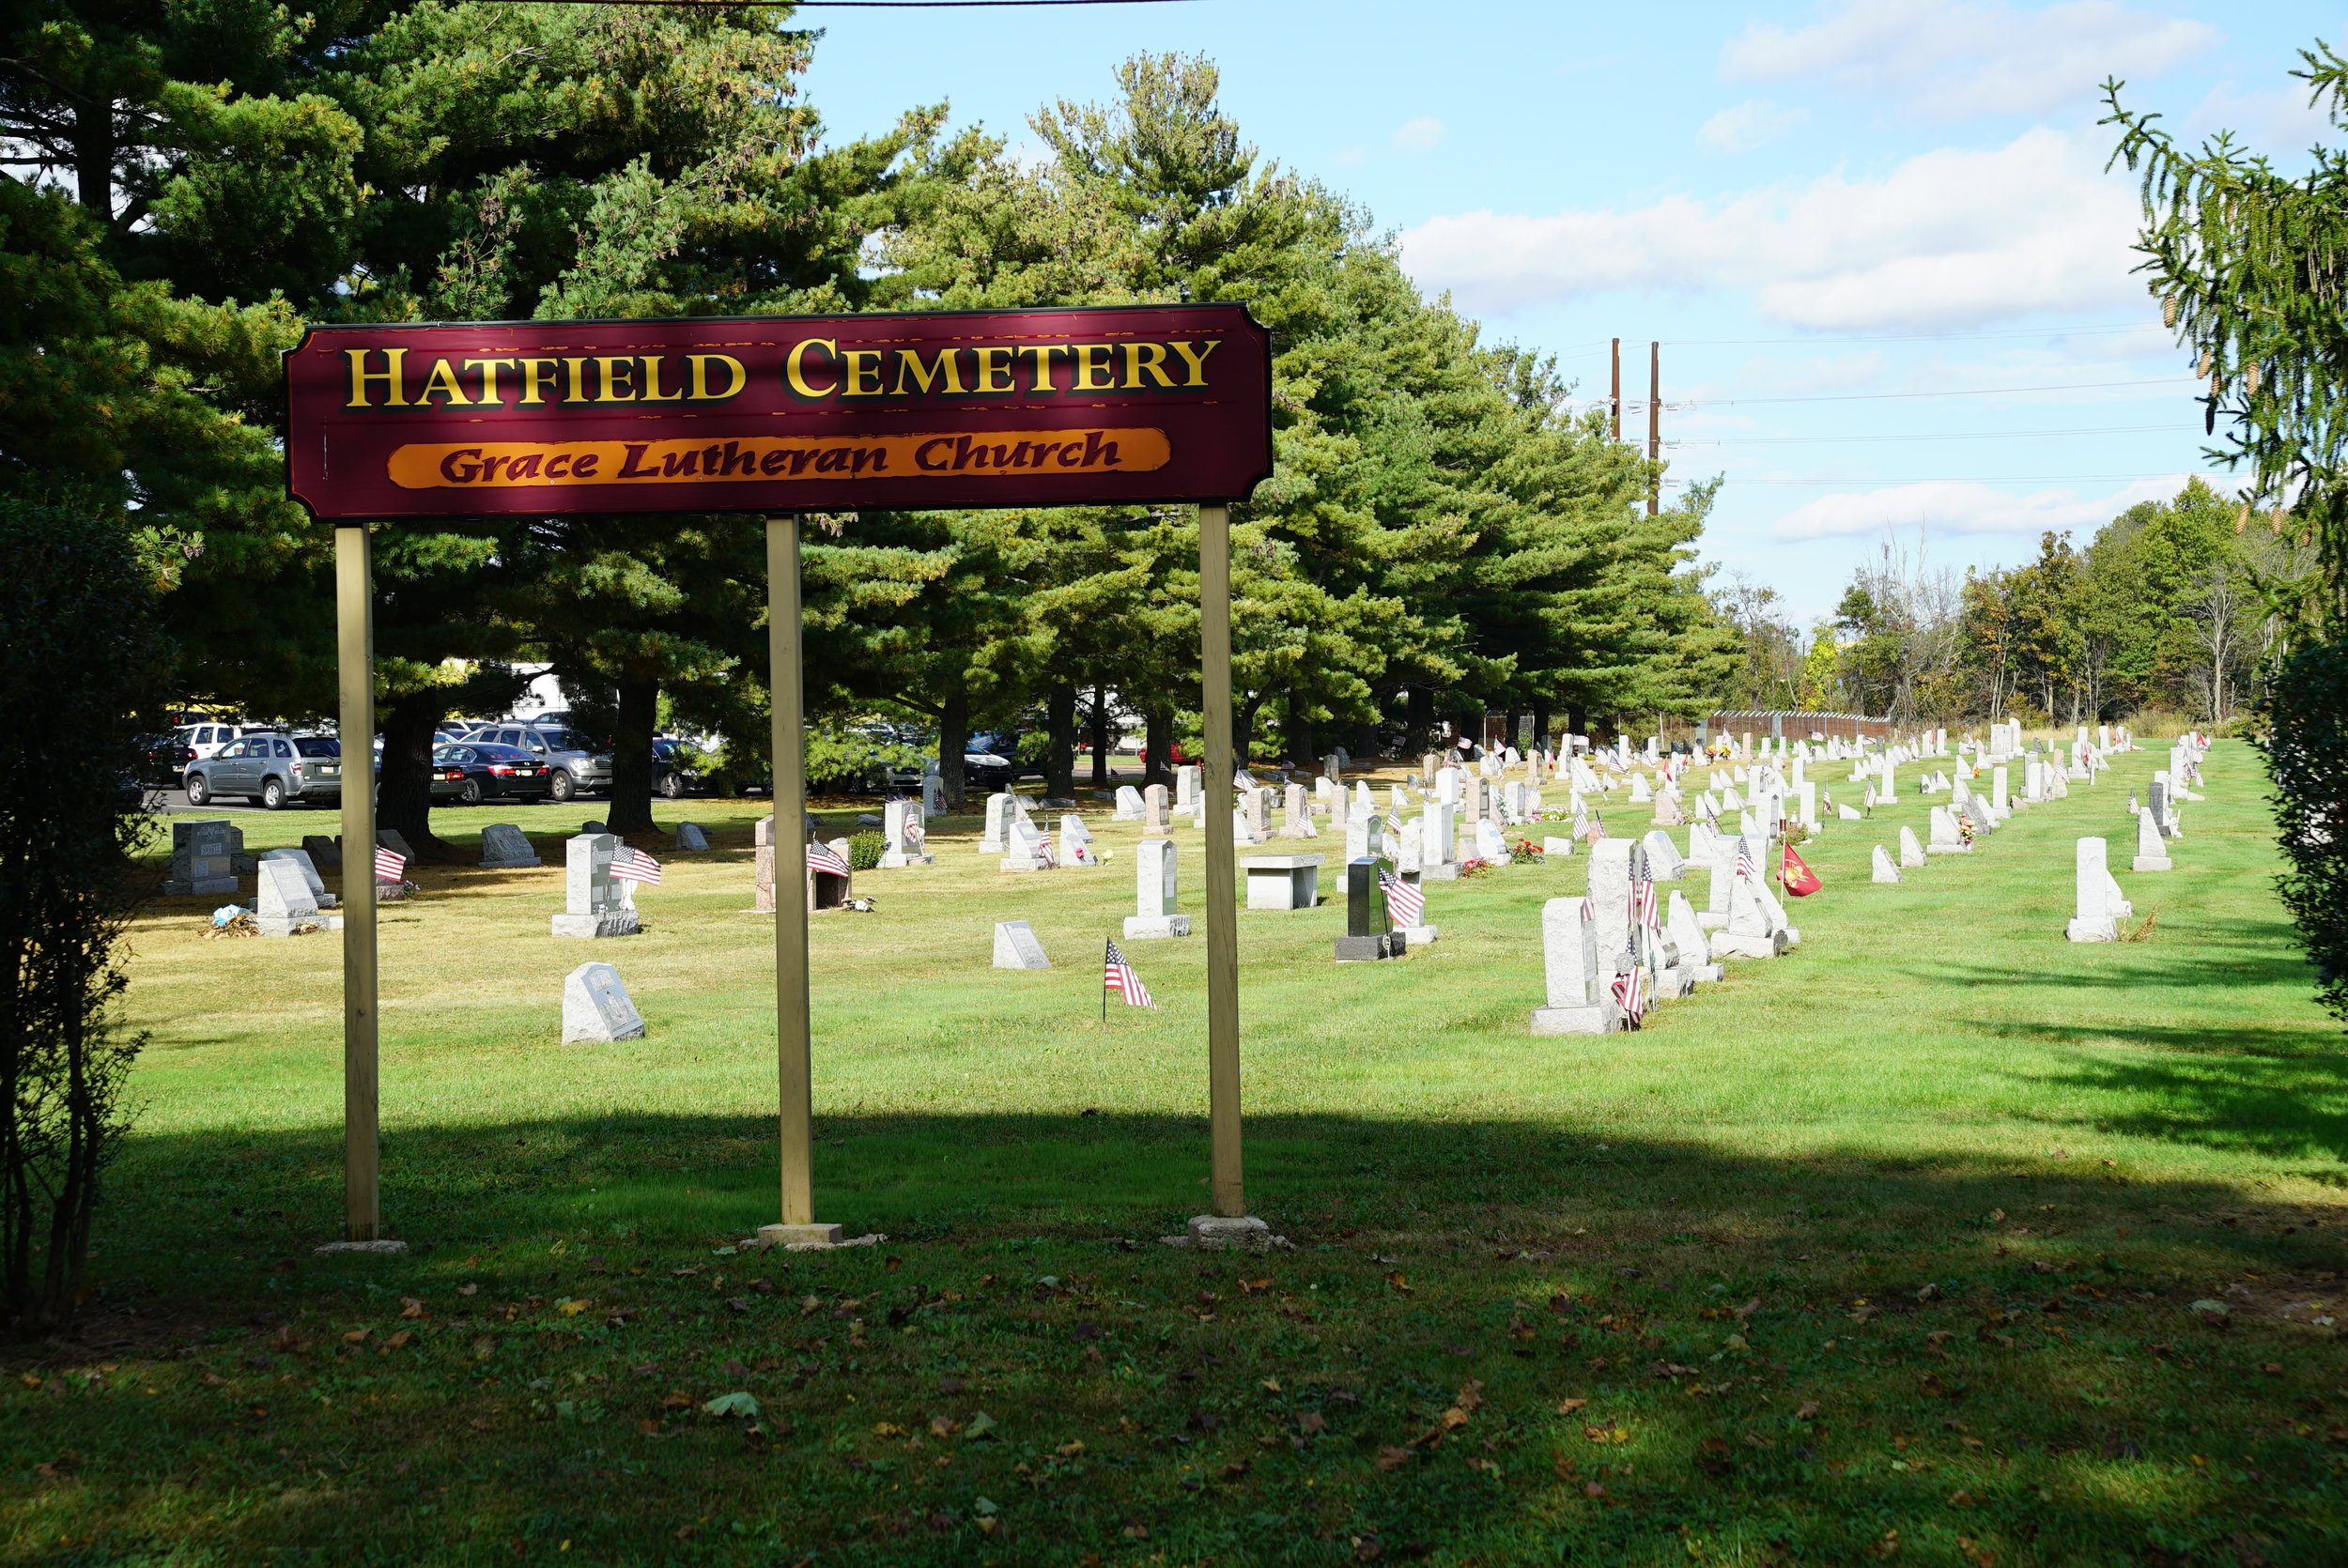 Hatfield Cemetery. Hatfield, Pennsylvania.